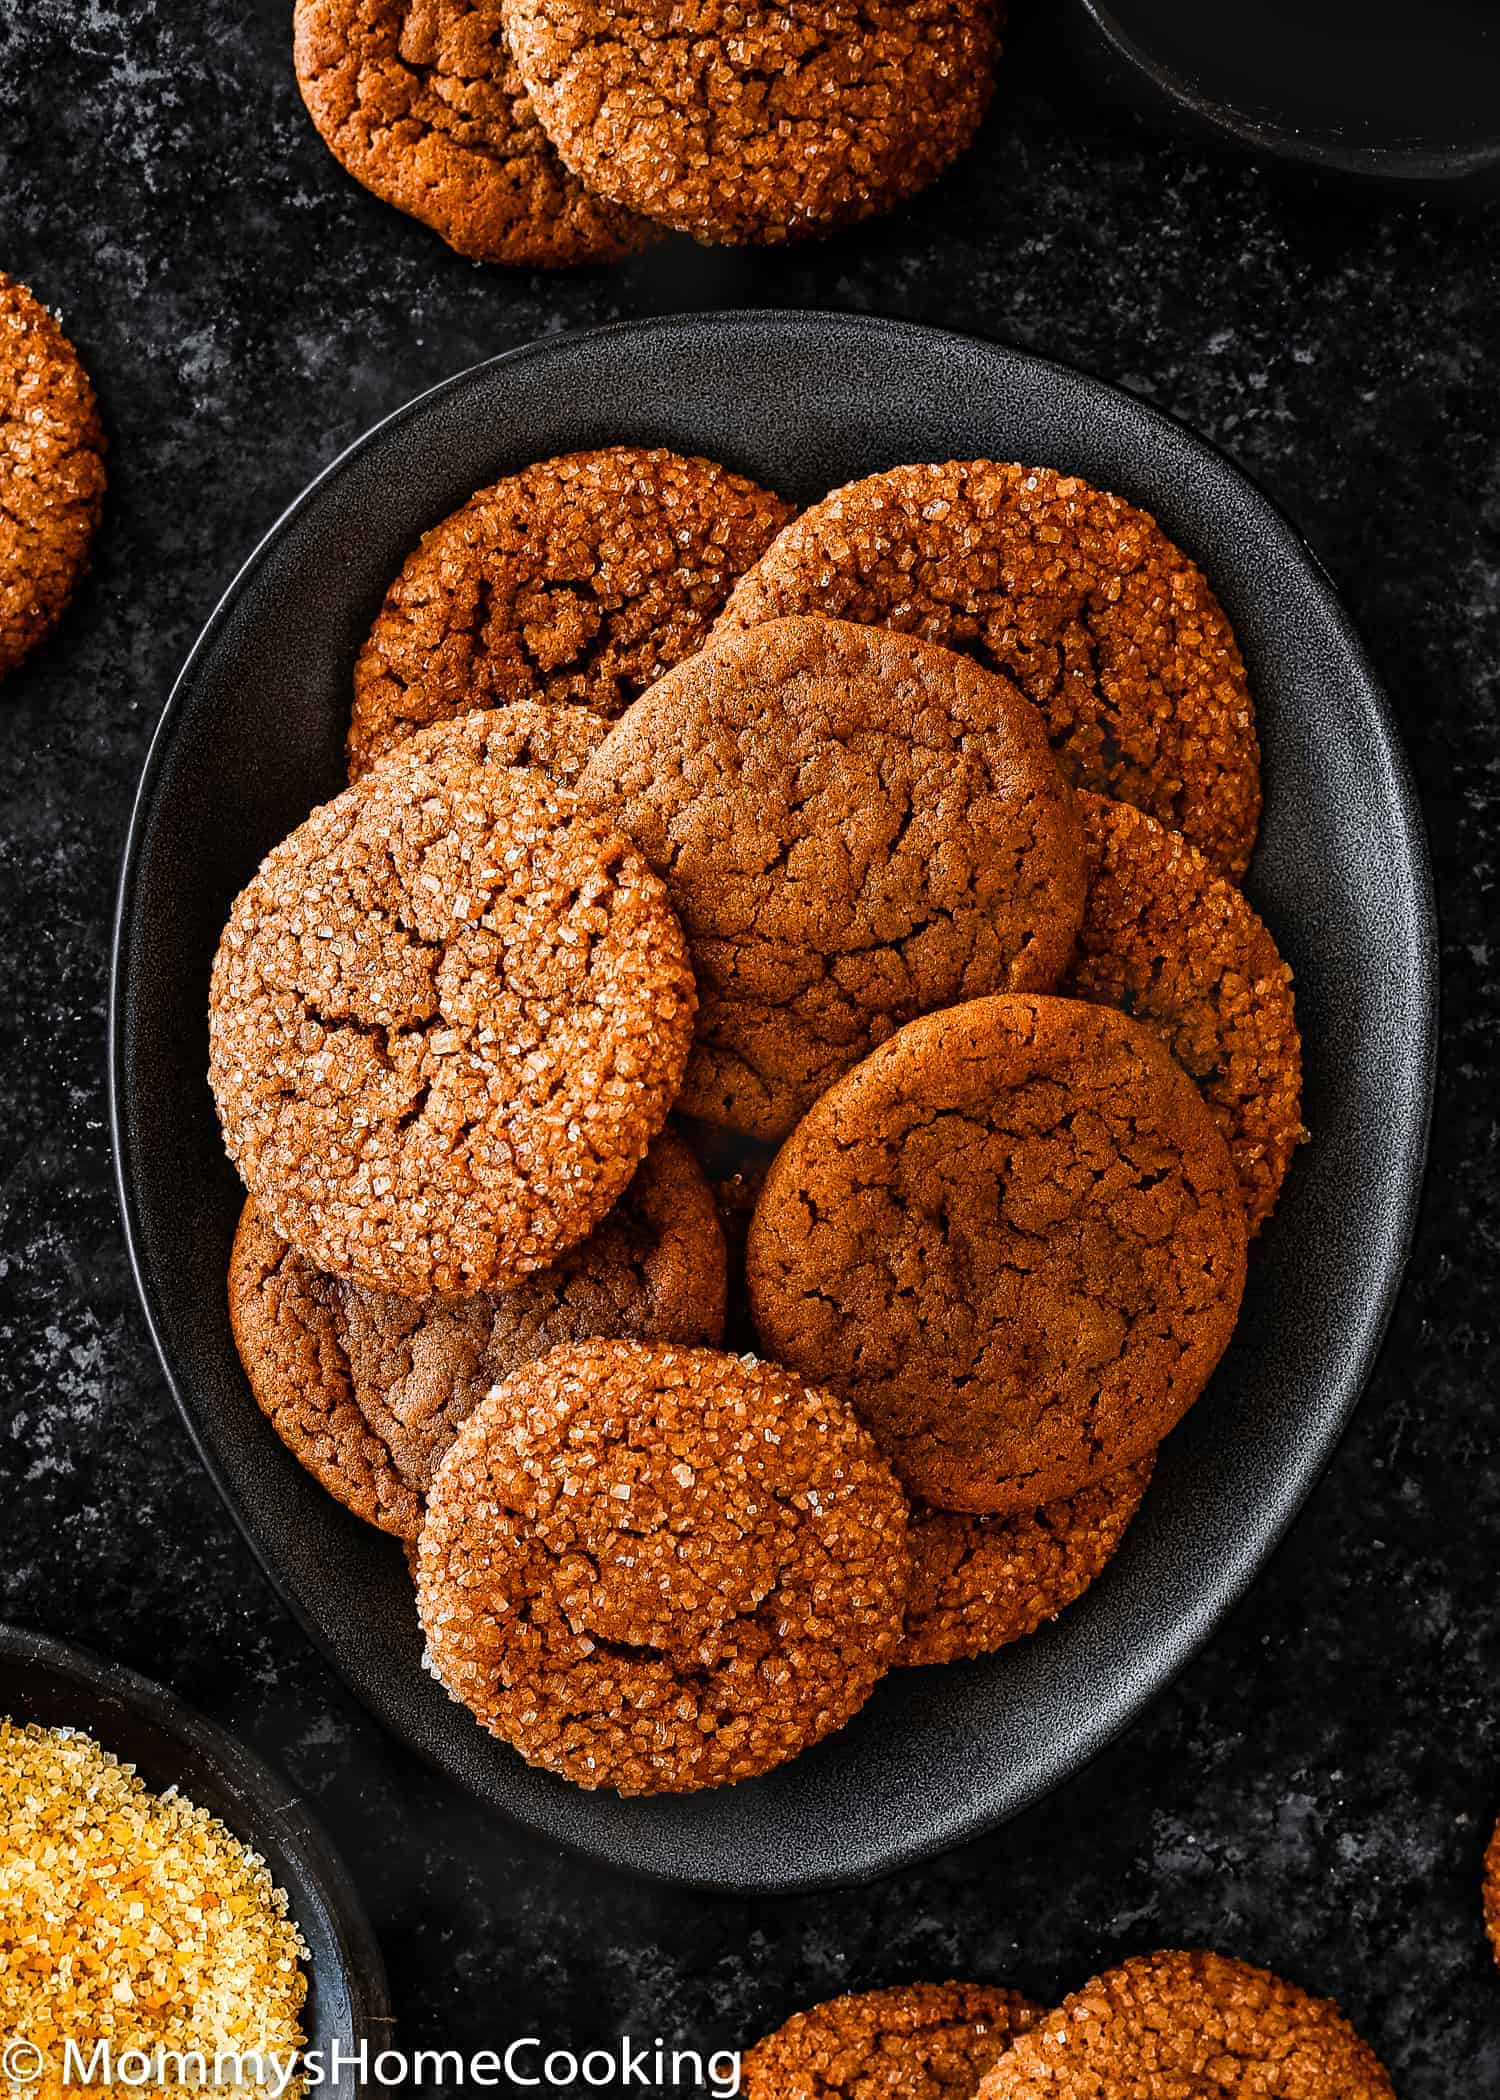 These Eggless Soft Molasses Cookies are the slightly crisp around the edges with a super soft, melt in your mouth, center! Packed with the amazing, rich flavors of molasses, ginger, and cinnamon, these molasses cookies are easy to make with simple ingredients. Make ahead and freezing tips included. https://mommyshomecooking.com